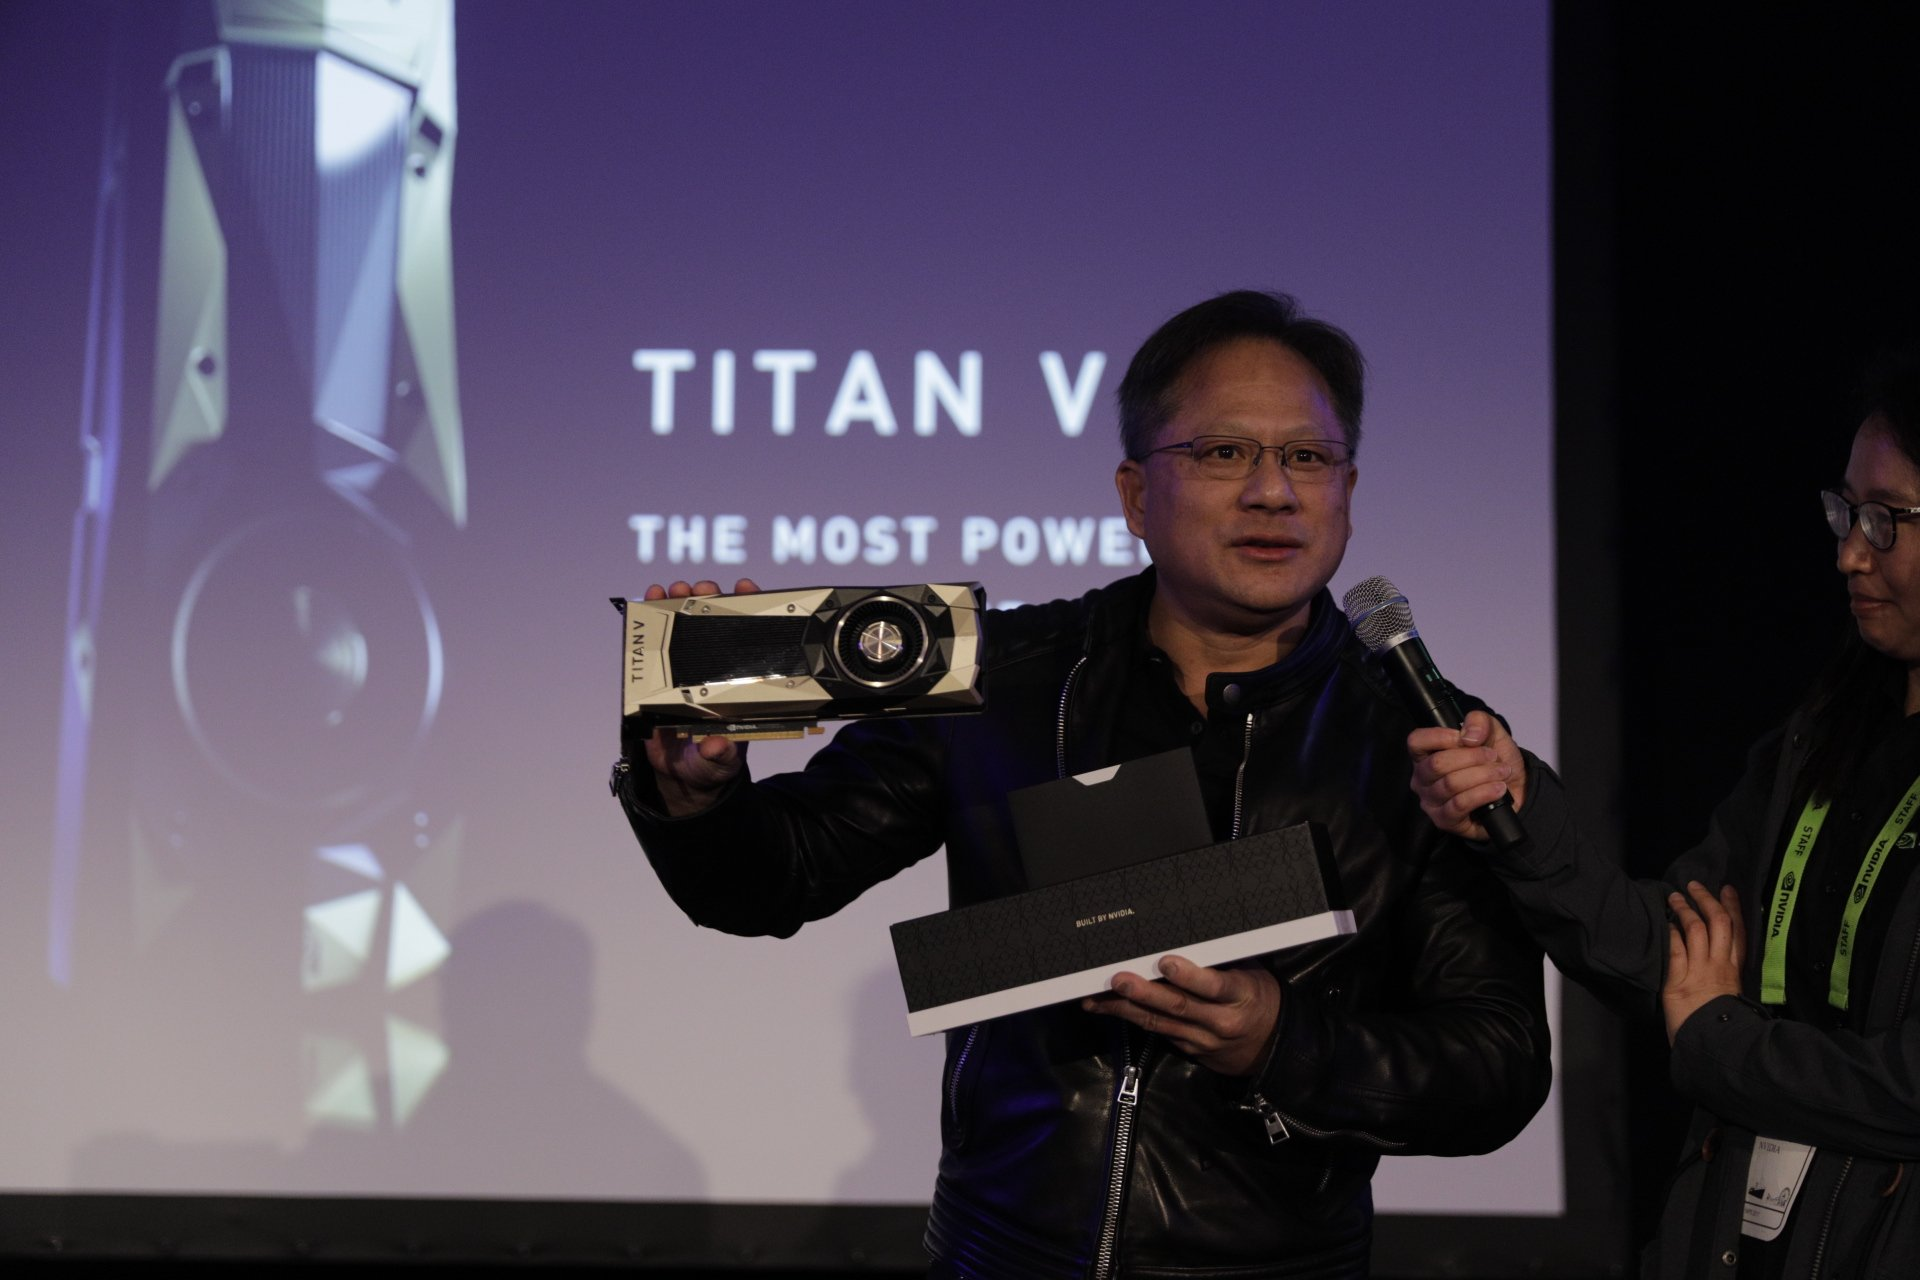 Nvidia launches Titan V, a new powerful PC GPU